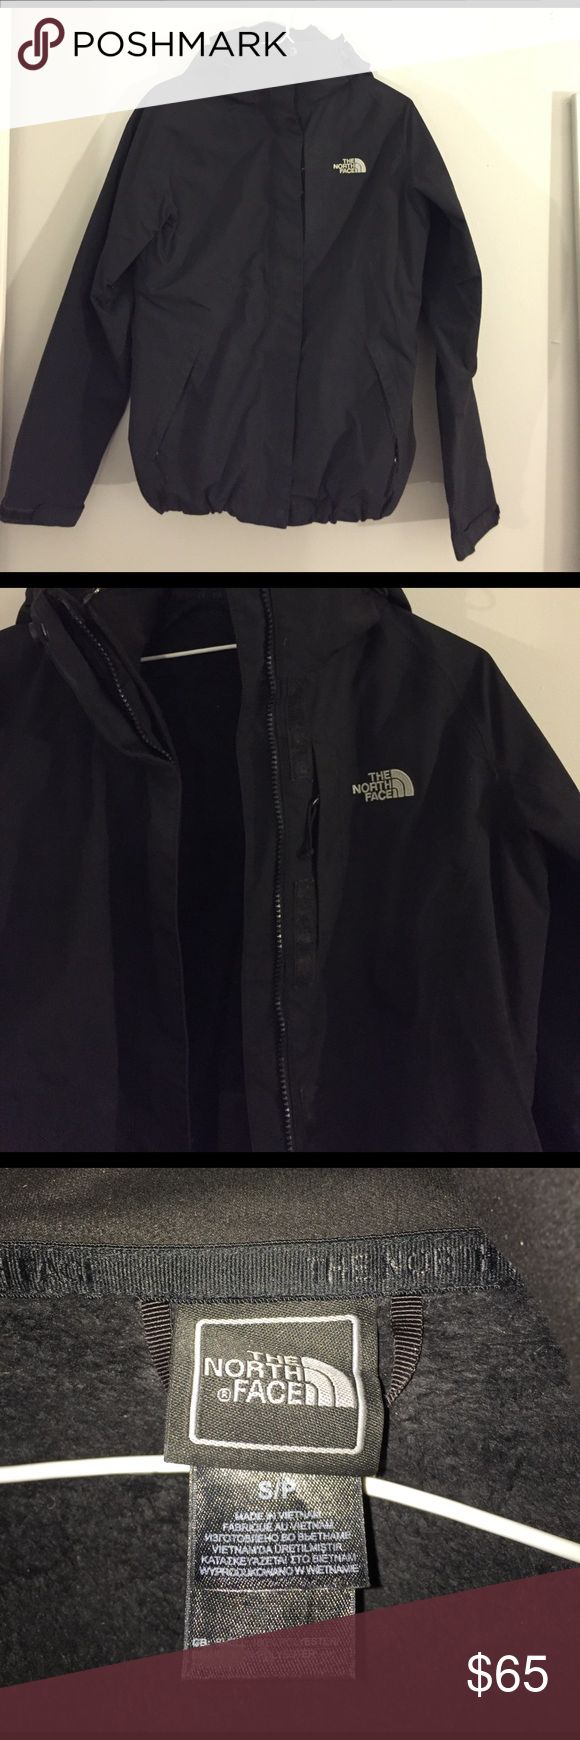 North Face jacket Black north face. Can be a winter jacket with the warm zip in lining on the inside, or a windbreaker/rain coat and can take out the inside zip in jacket. Worn, but in great condition. No flaws! lululemon athletica Jackets & Coats